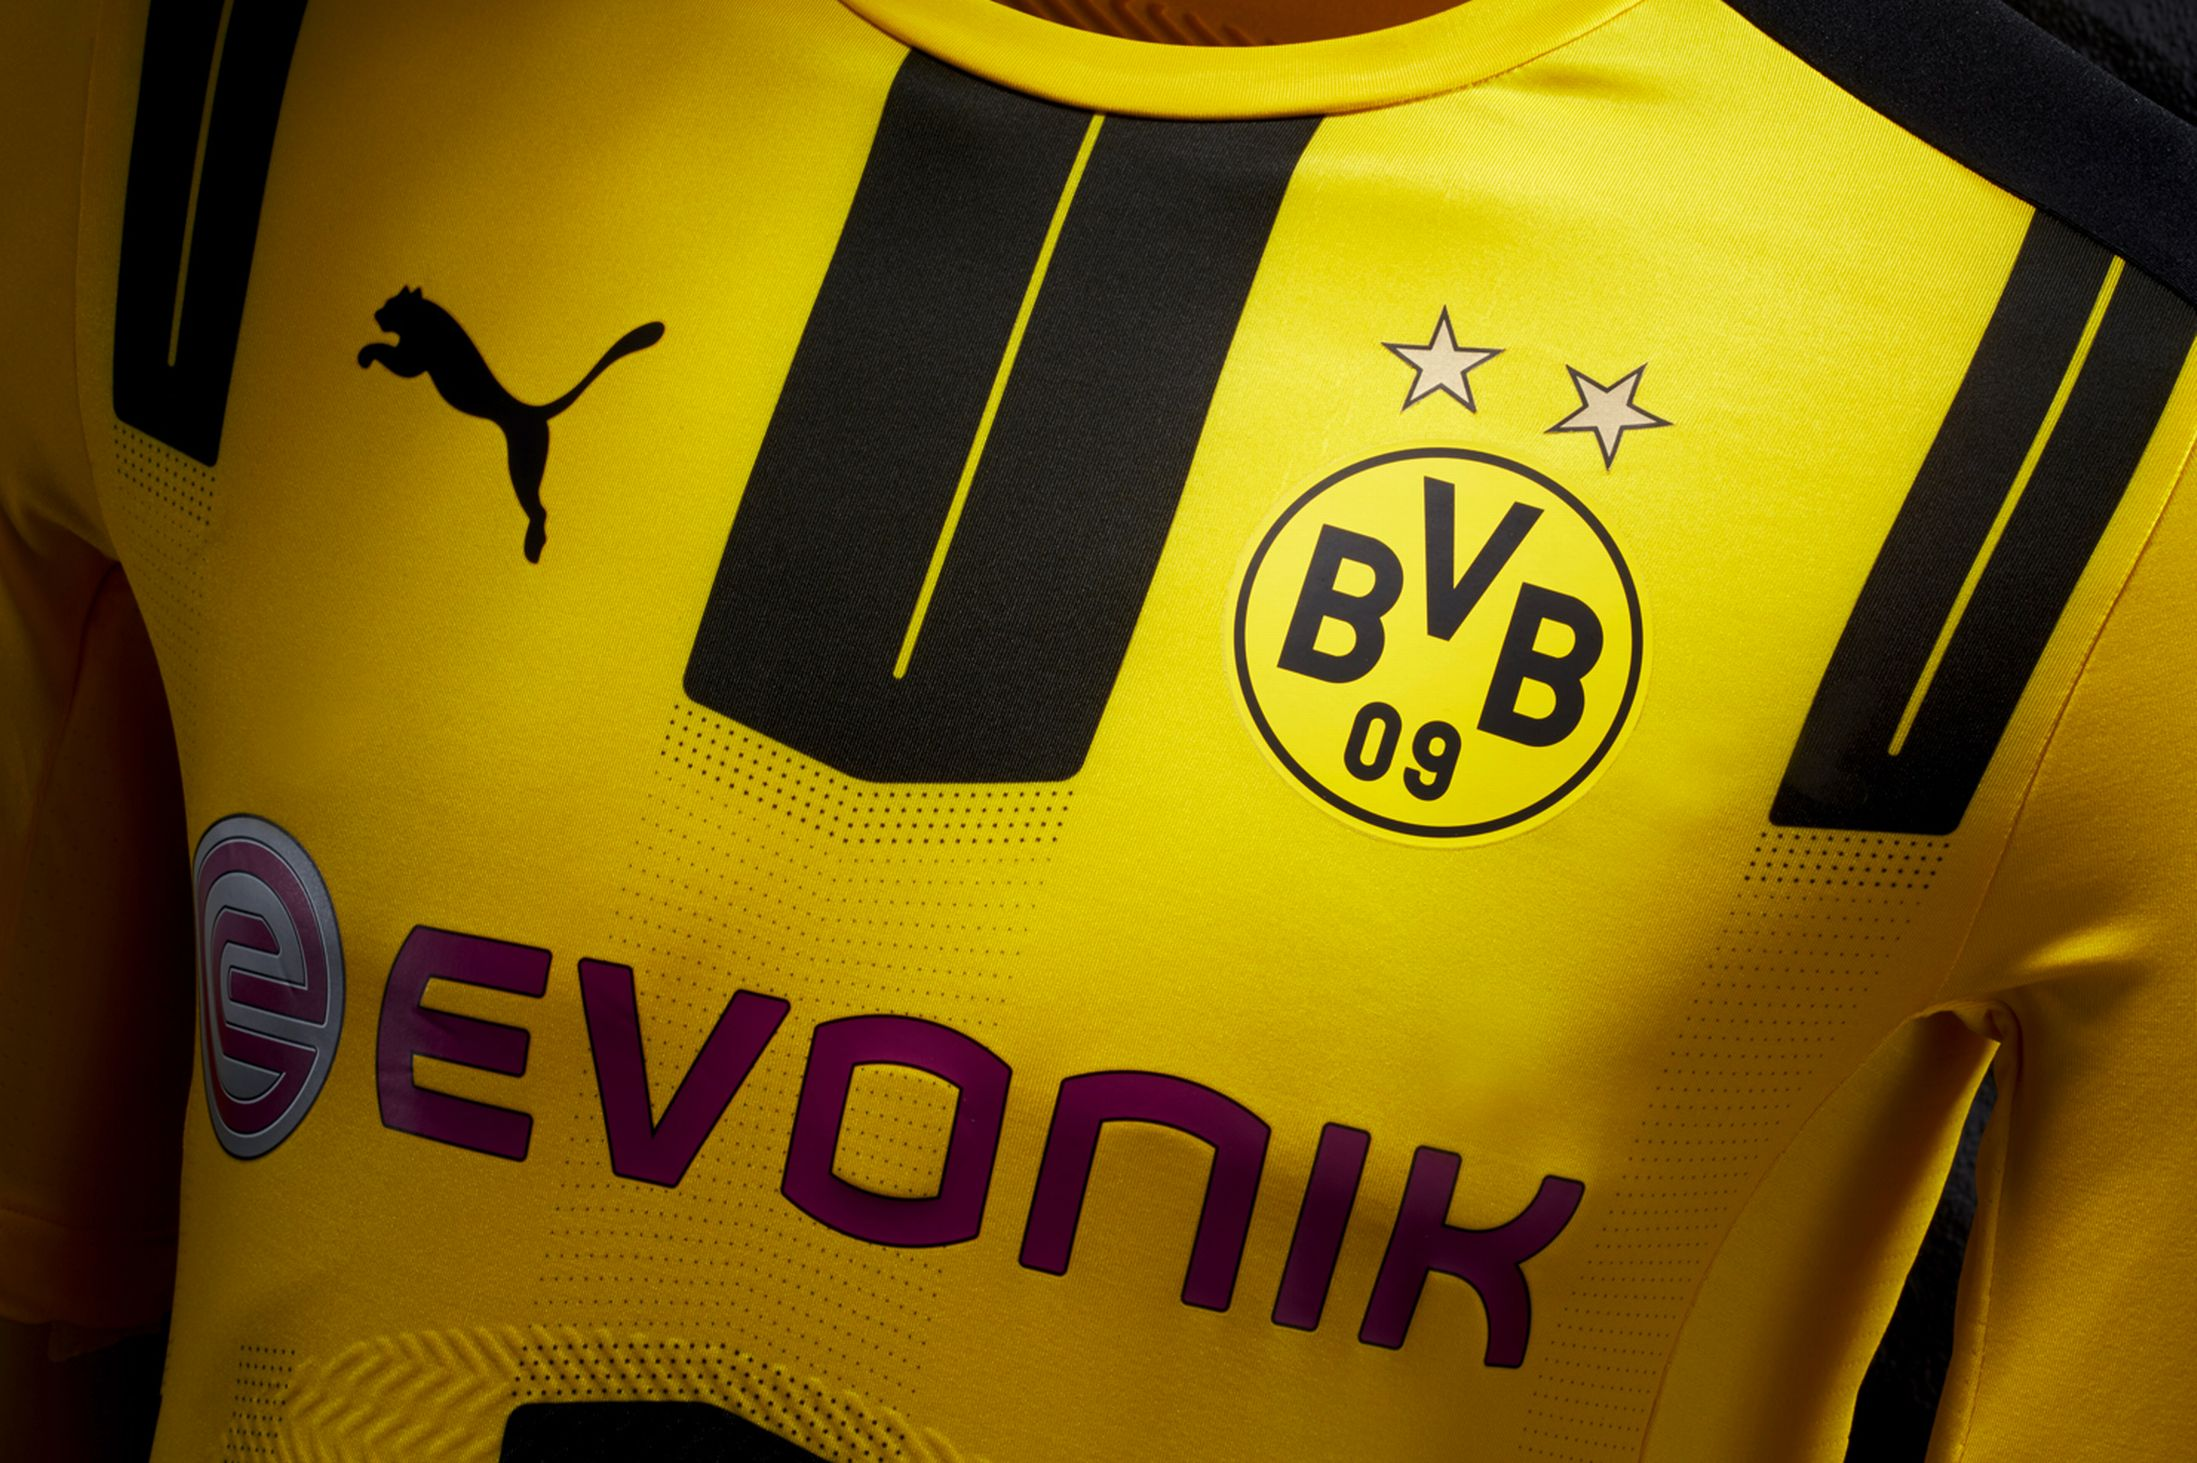 97662c2e884 A Look At The Best New Kits For The 2016-17 Club Season